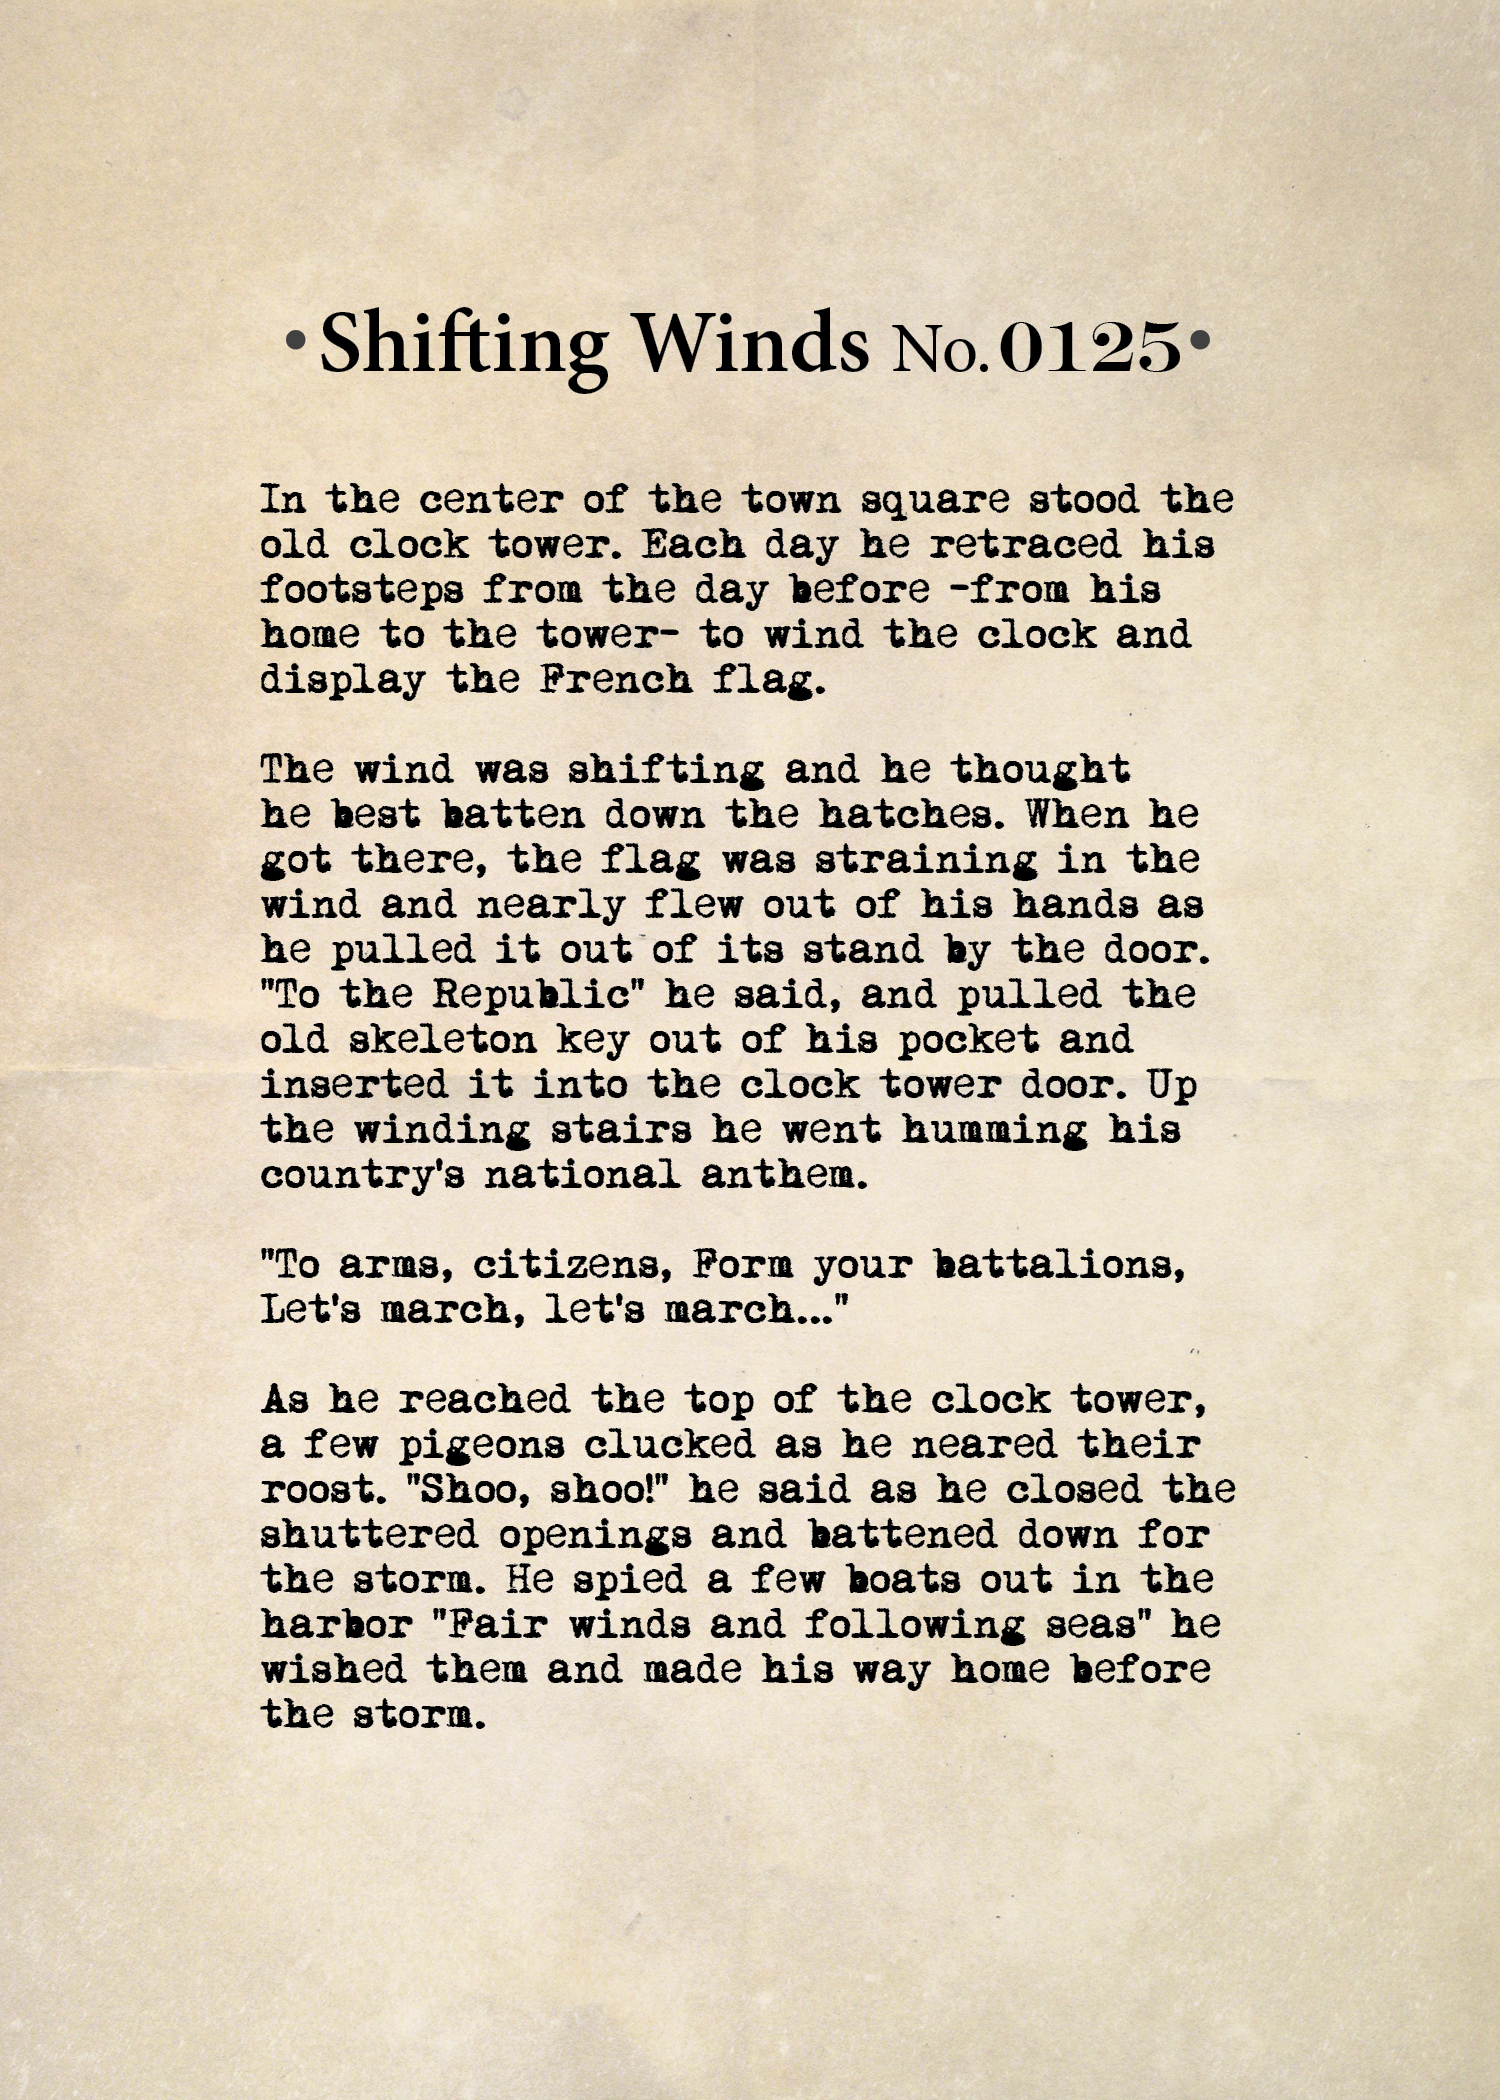 Shifting Winds No. 1125